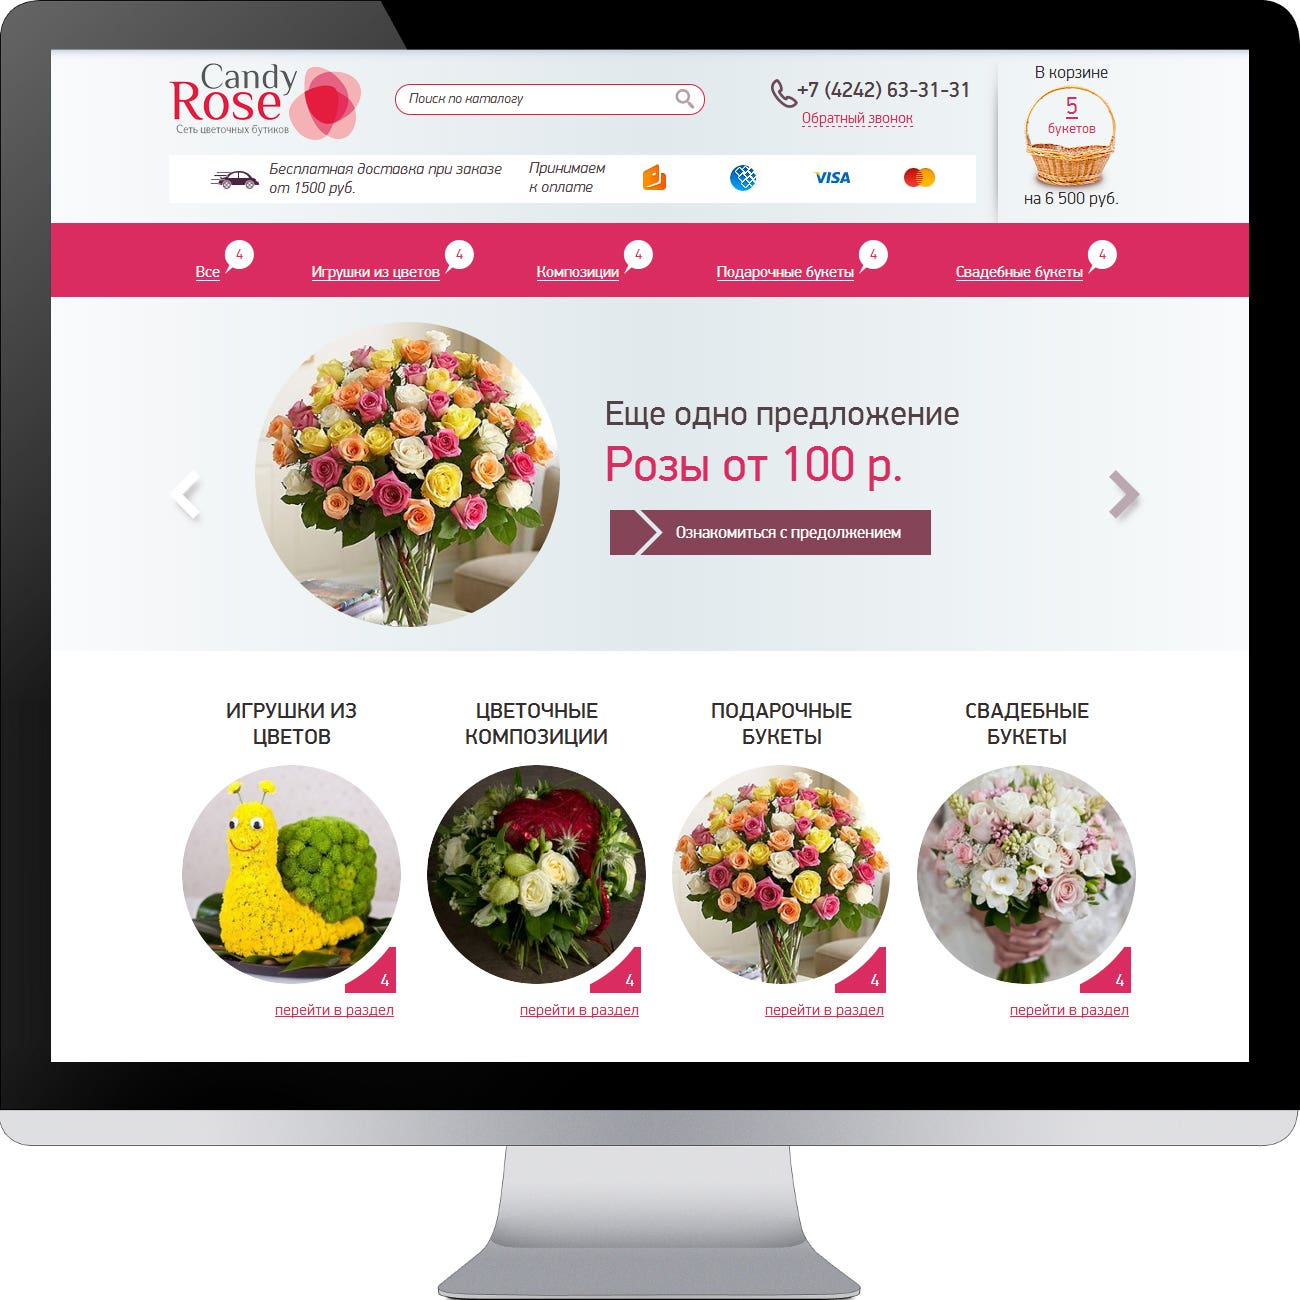 website design Candy Rose